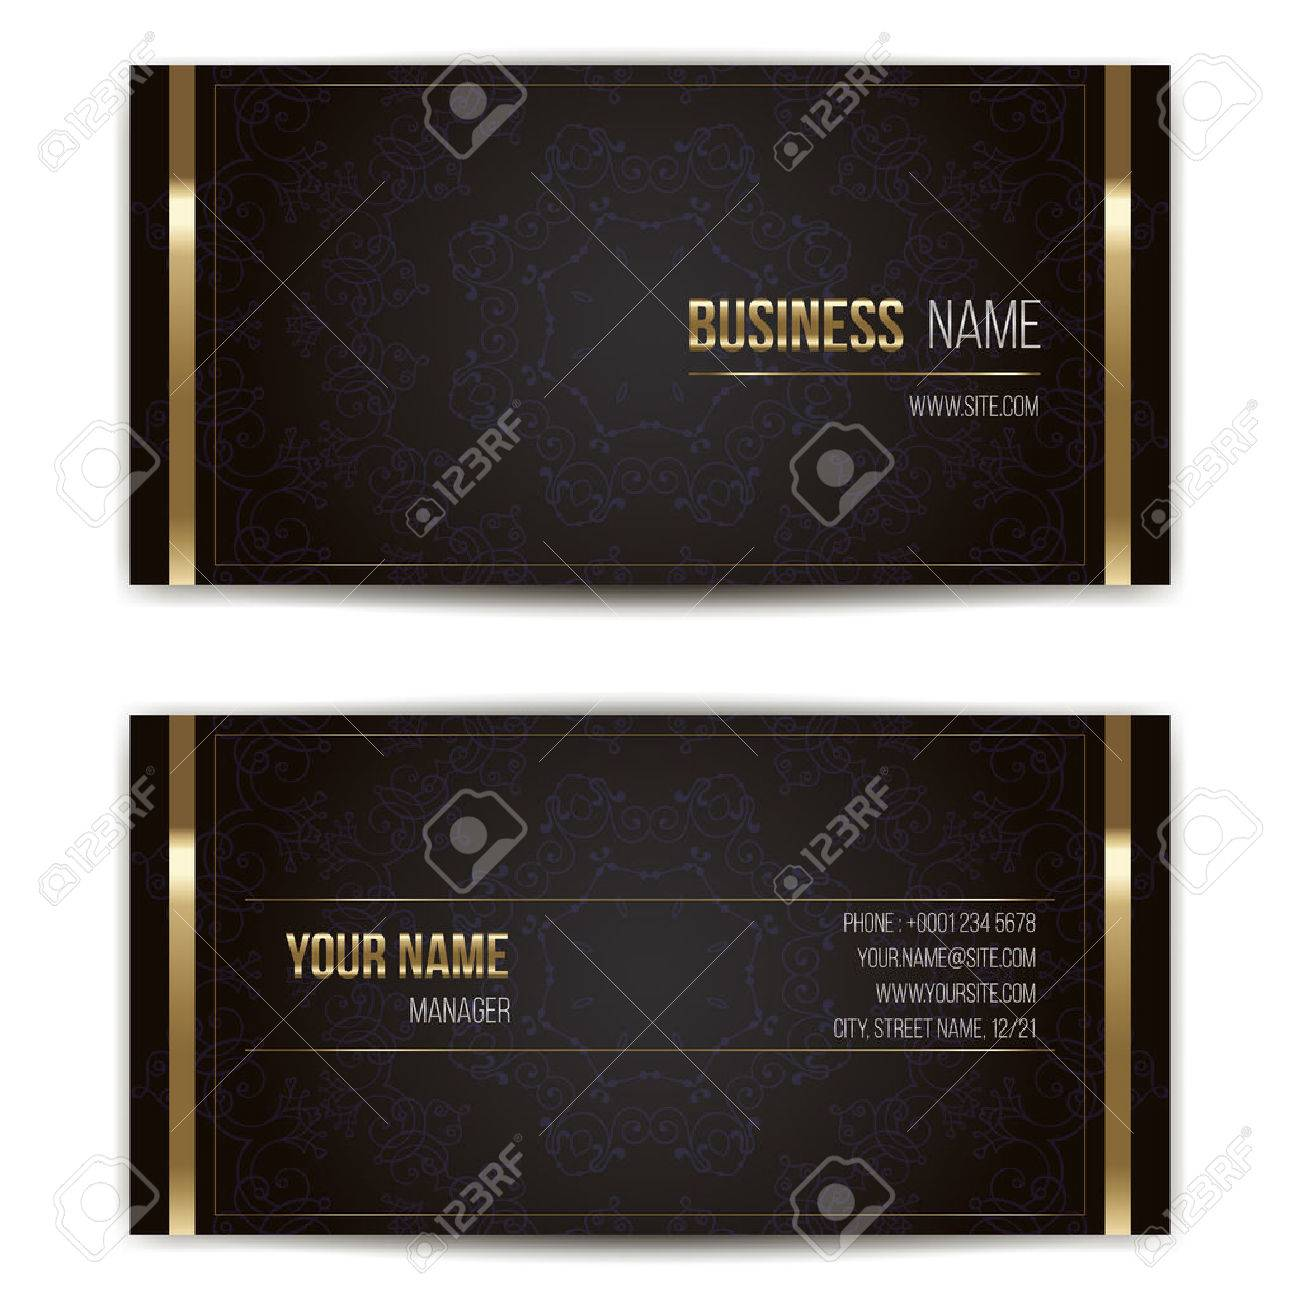 Elegant vector business card template. Vector format. Gold and dark colors. - 43815408